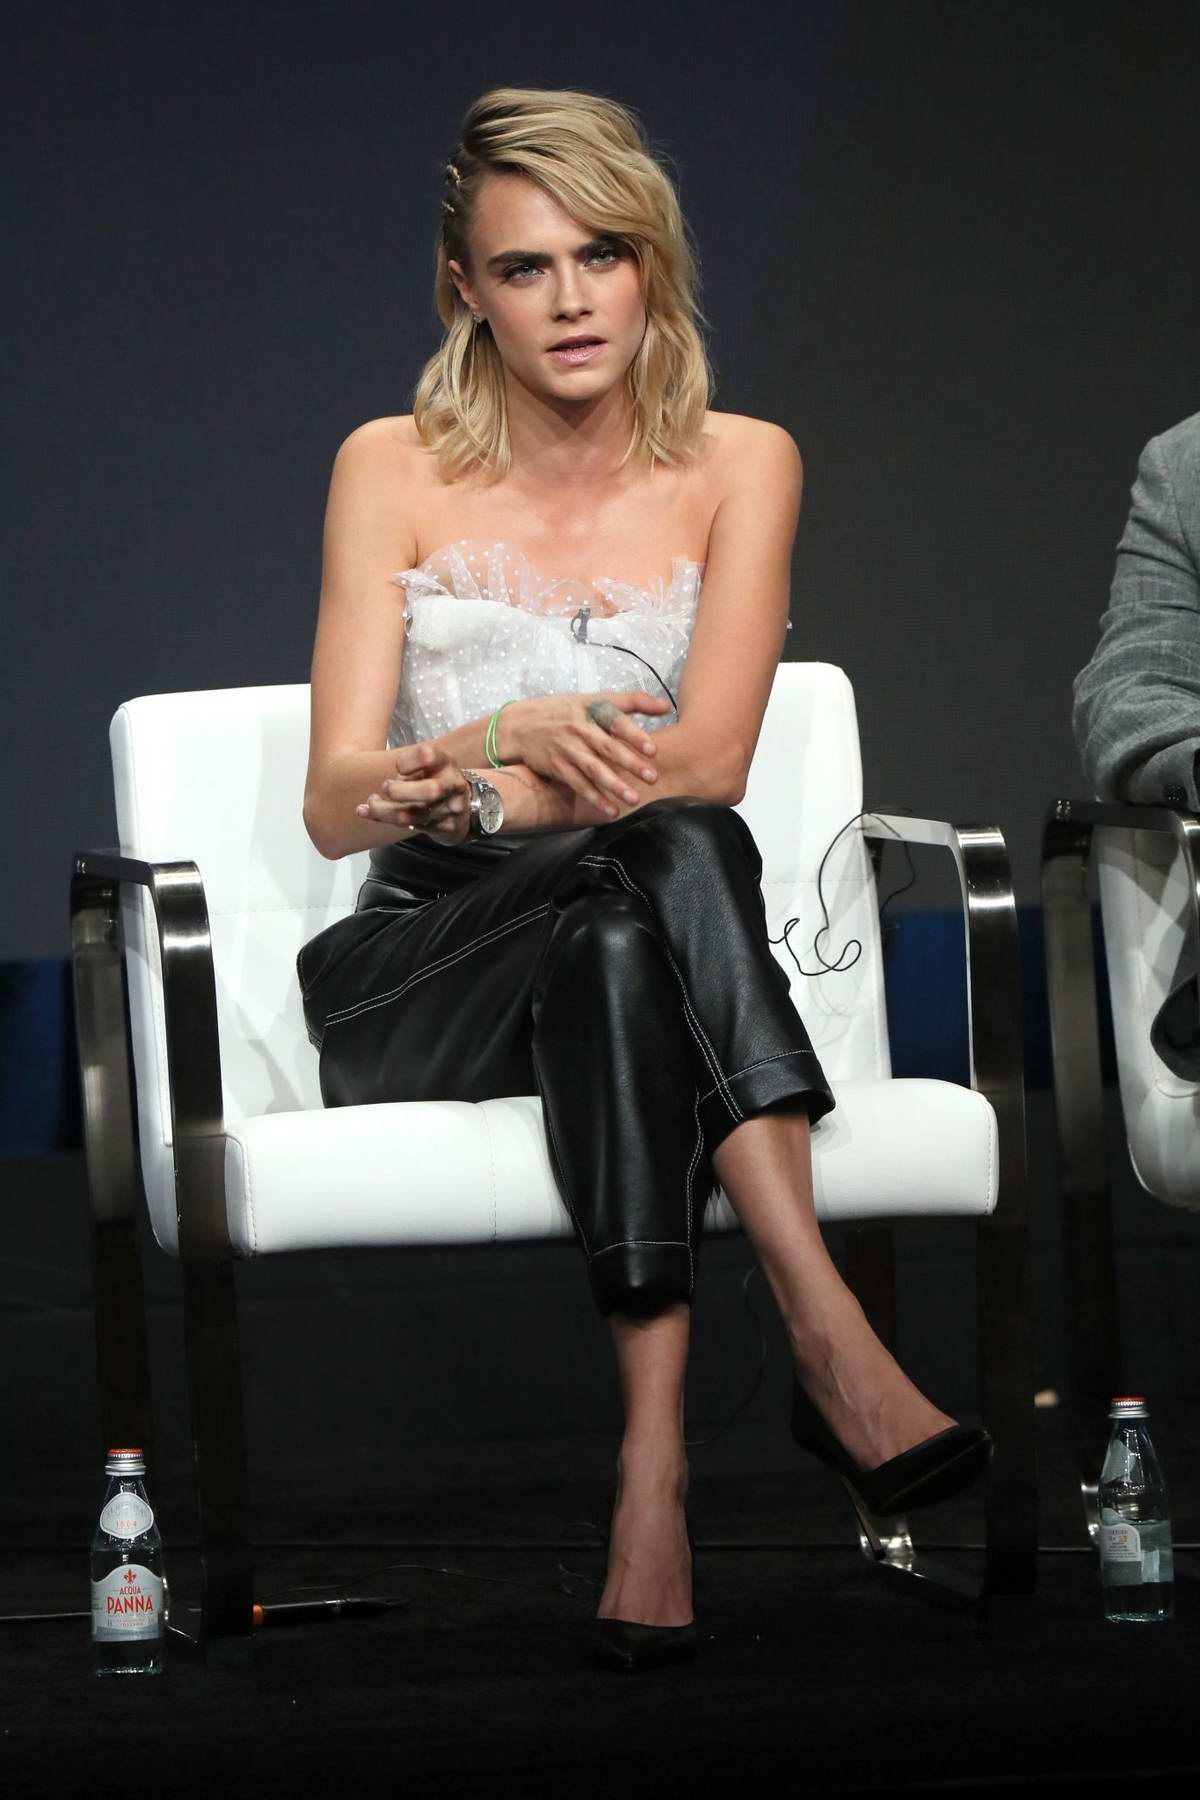 Cara Delevingne attends the 'Carnival Row' Panel at the Summer 2019 TCA Press Tour in Beverly Hills, Los Angeles